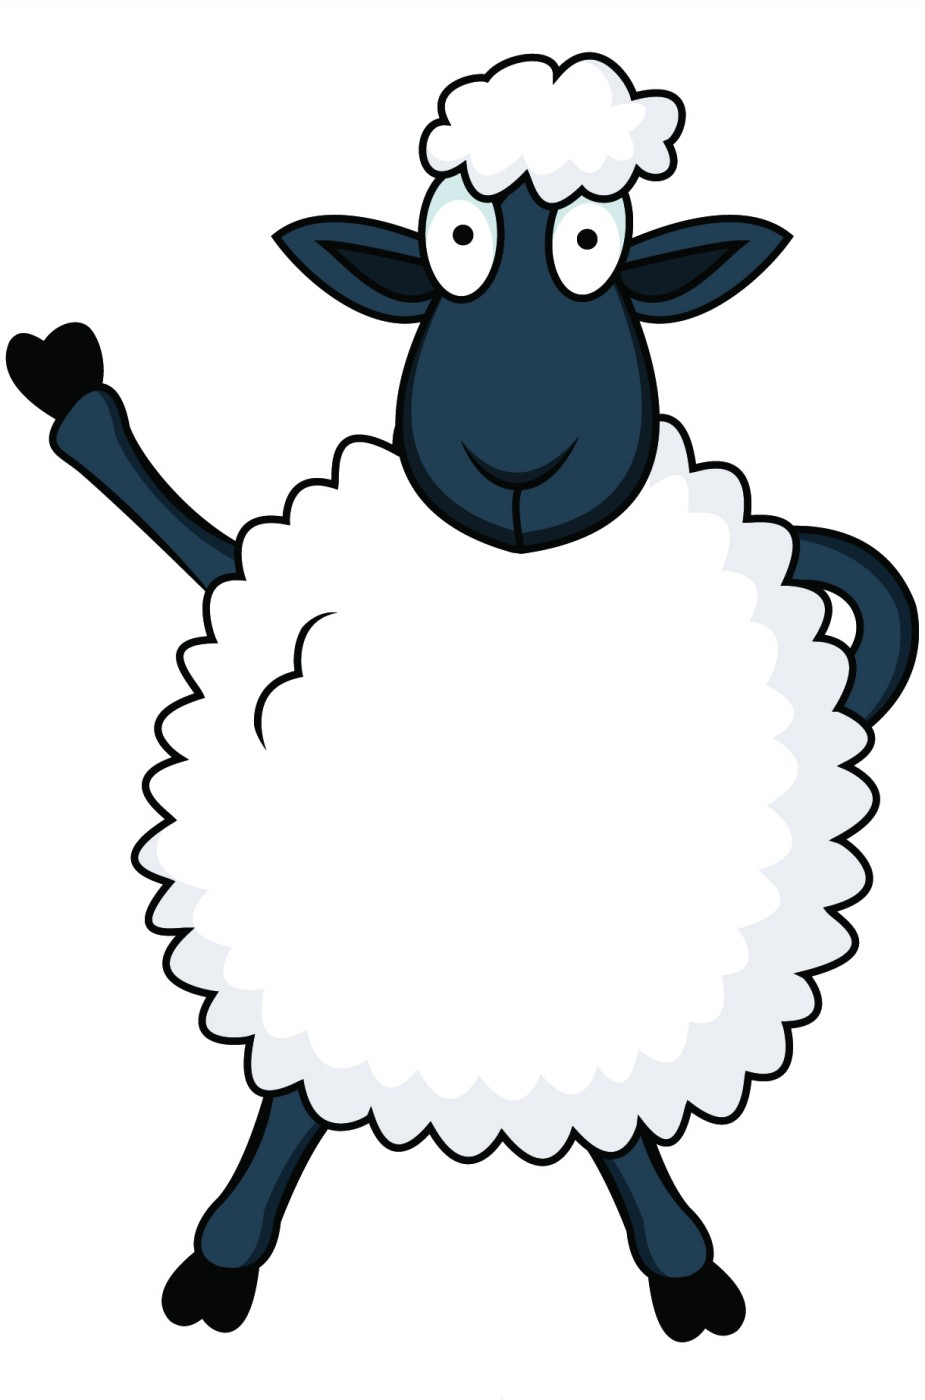 Sheep Clip Art Free | Dog Breeds Picture